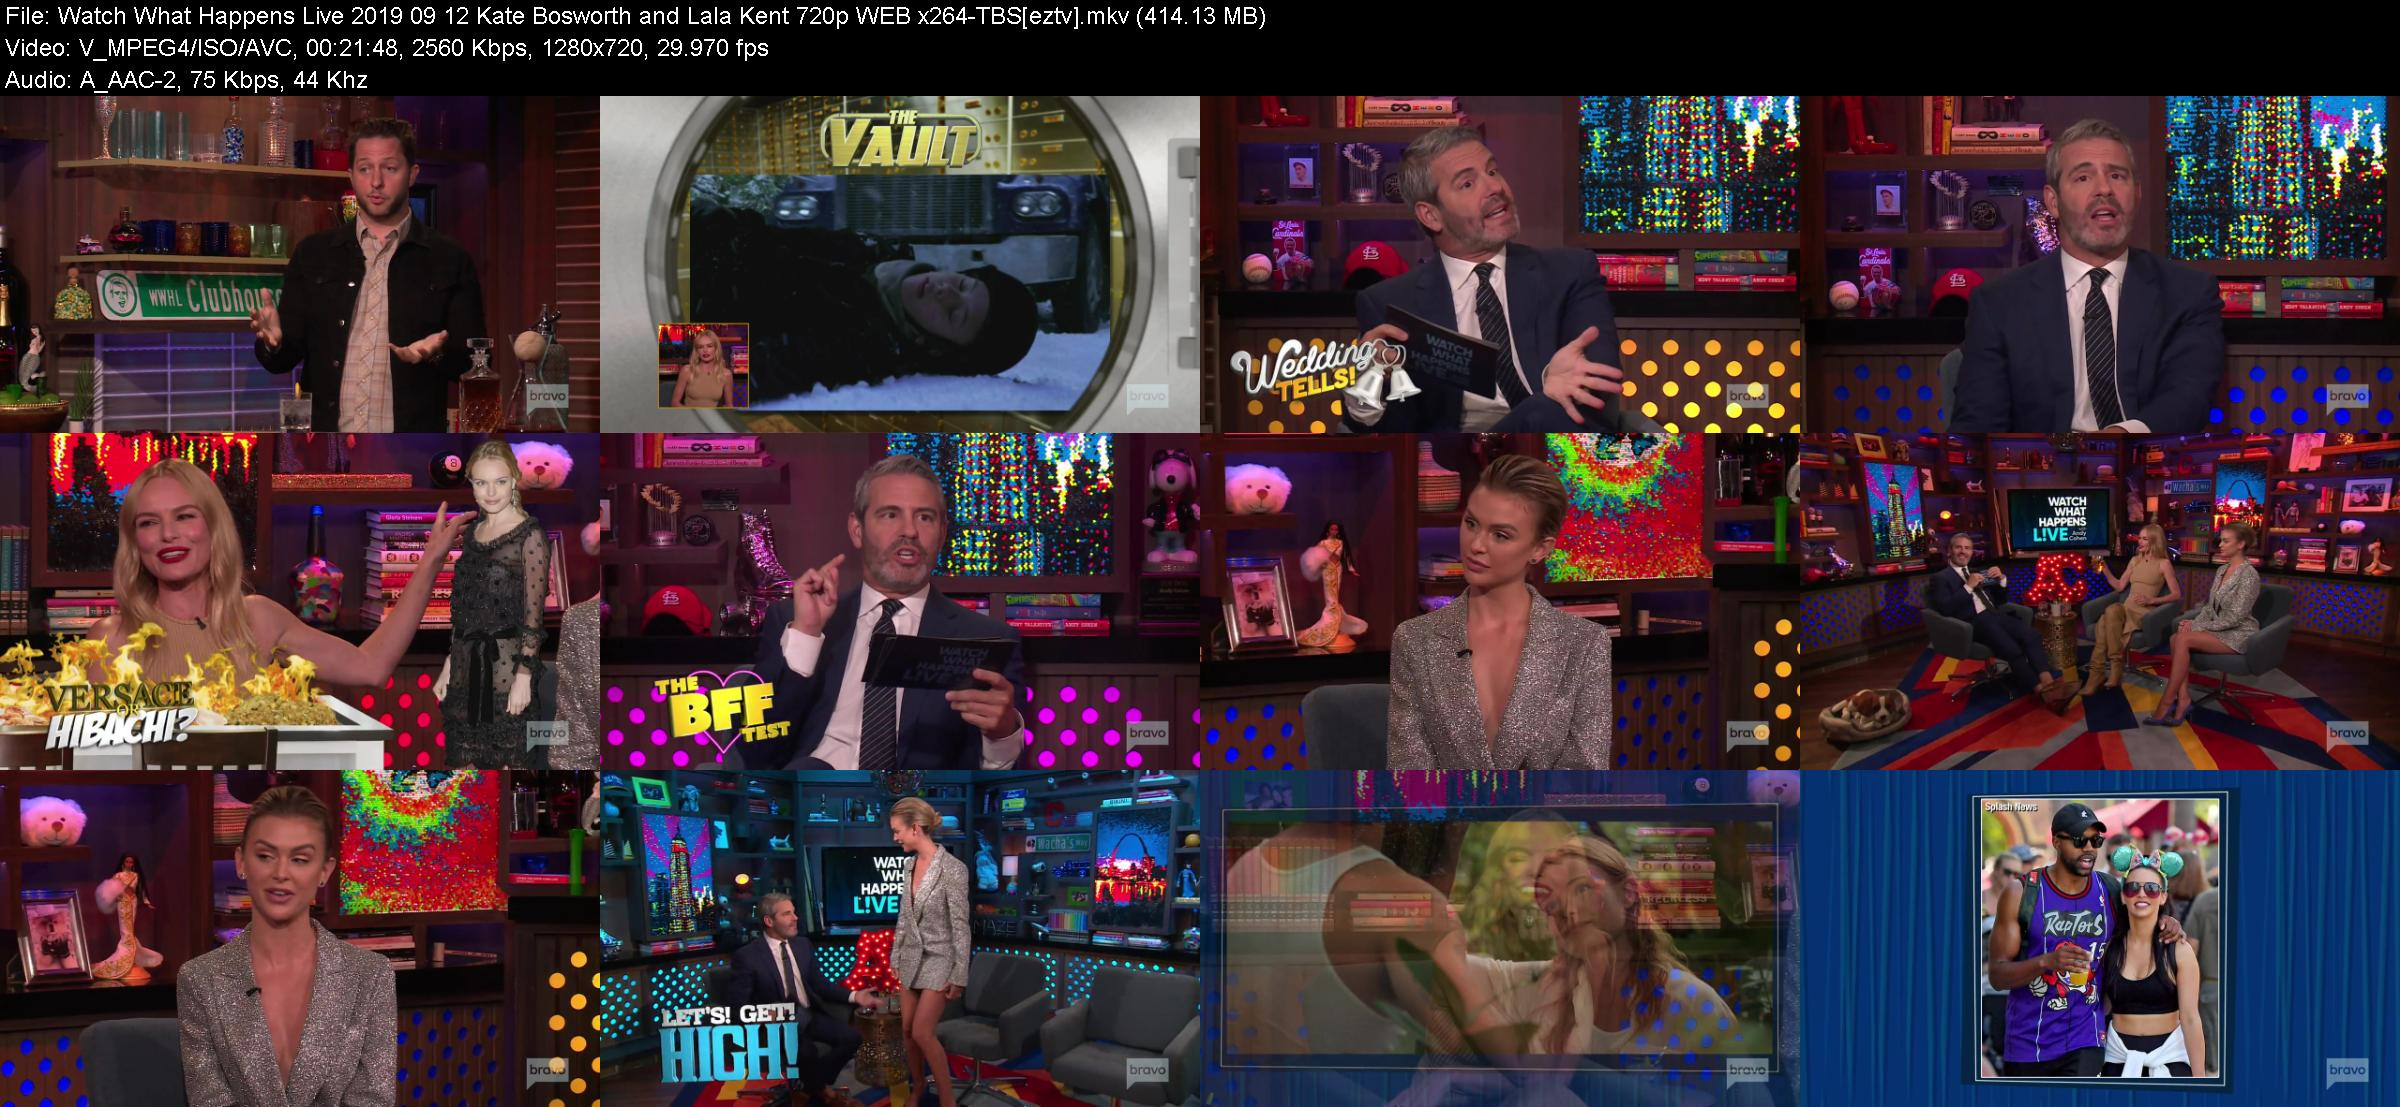 Watch What Happens Live 2019 09 12 Kate Bosworth and Lala Kent 720p WEB x264-TBS